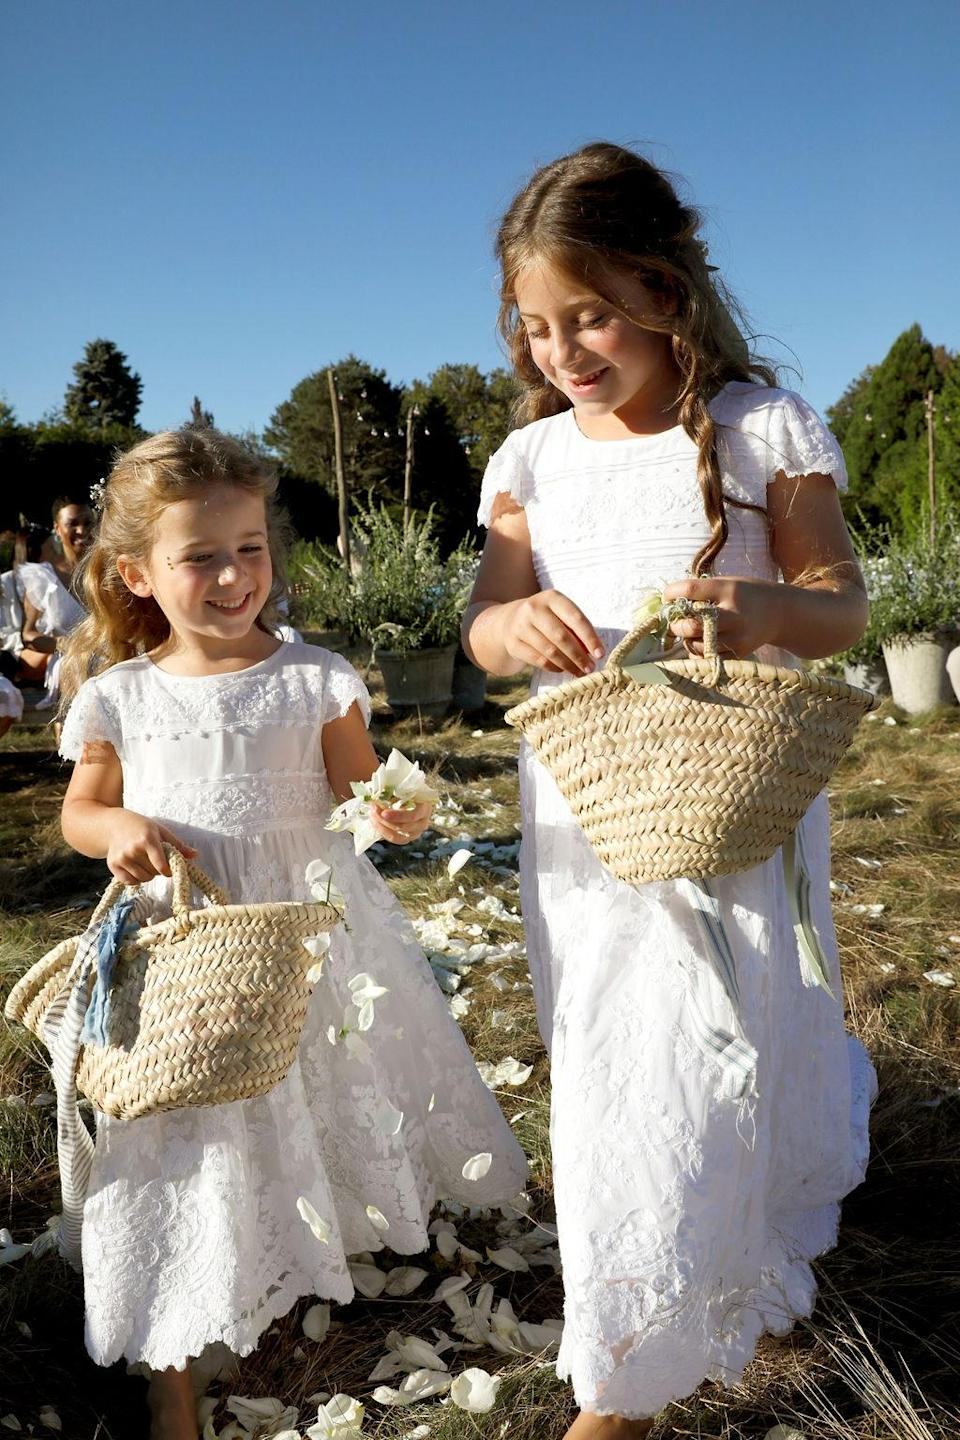 """""""Flower girls, sisters Stella and Scarlett. This was their first wedding experience,"""" Dean says."""